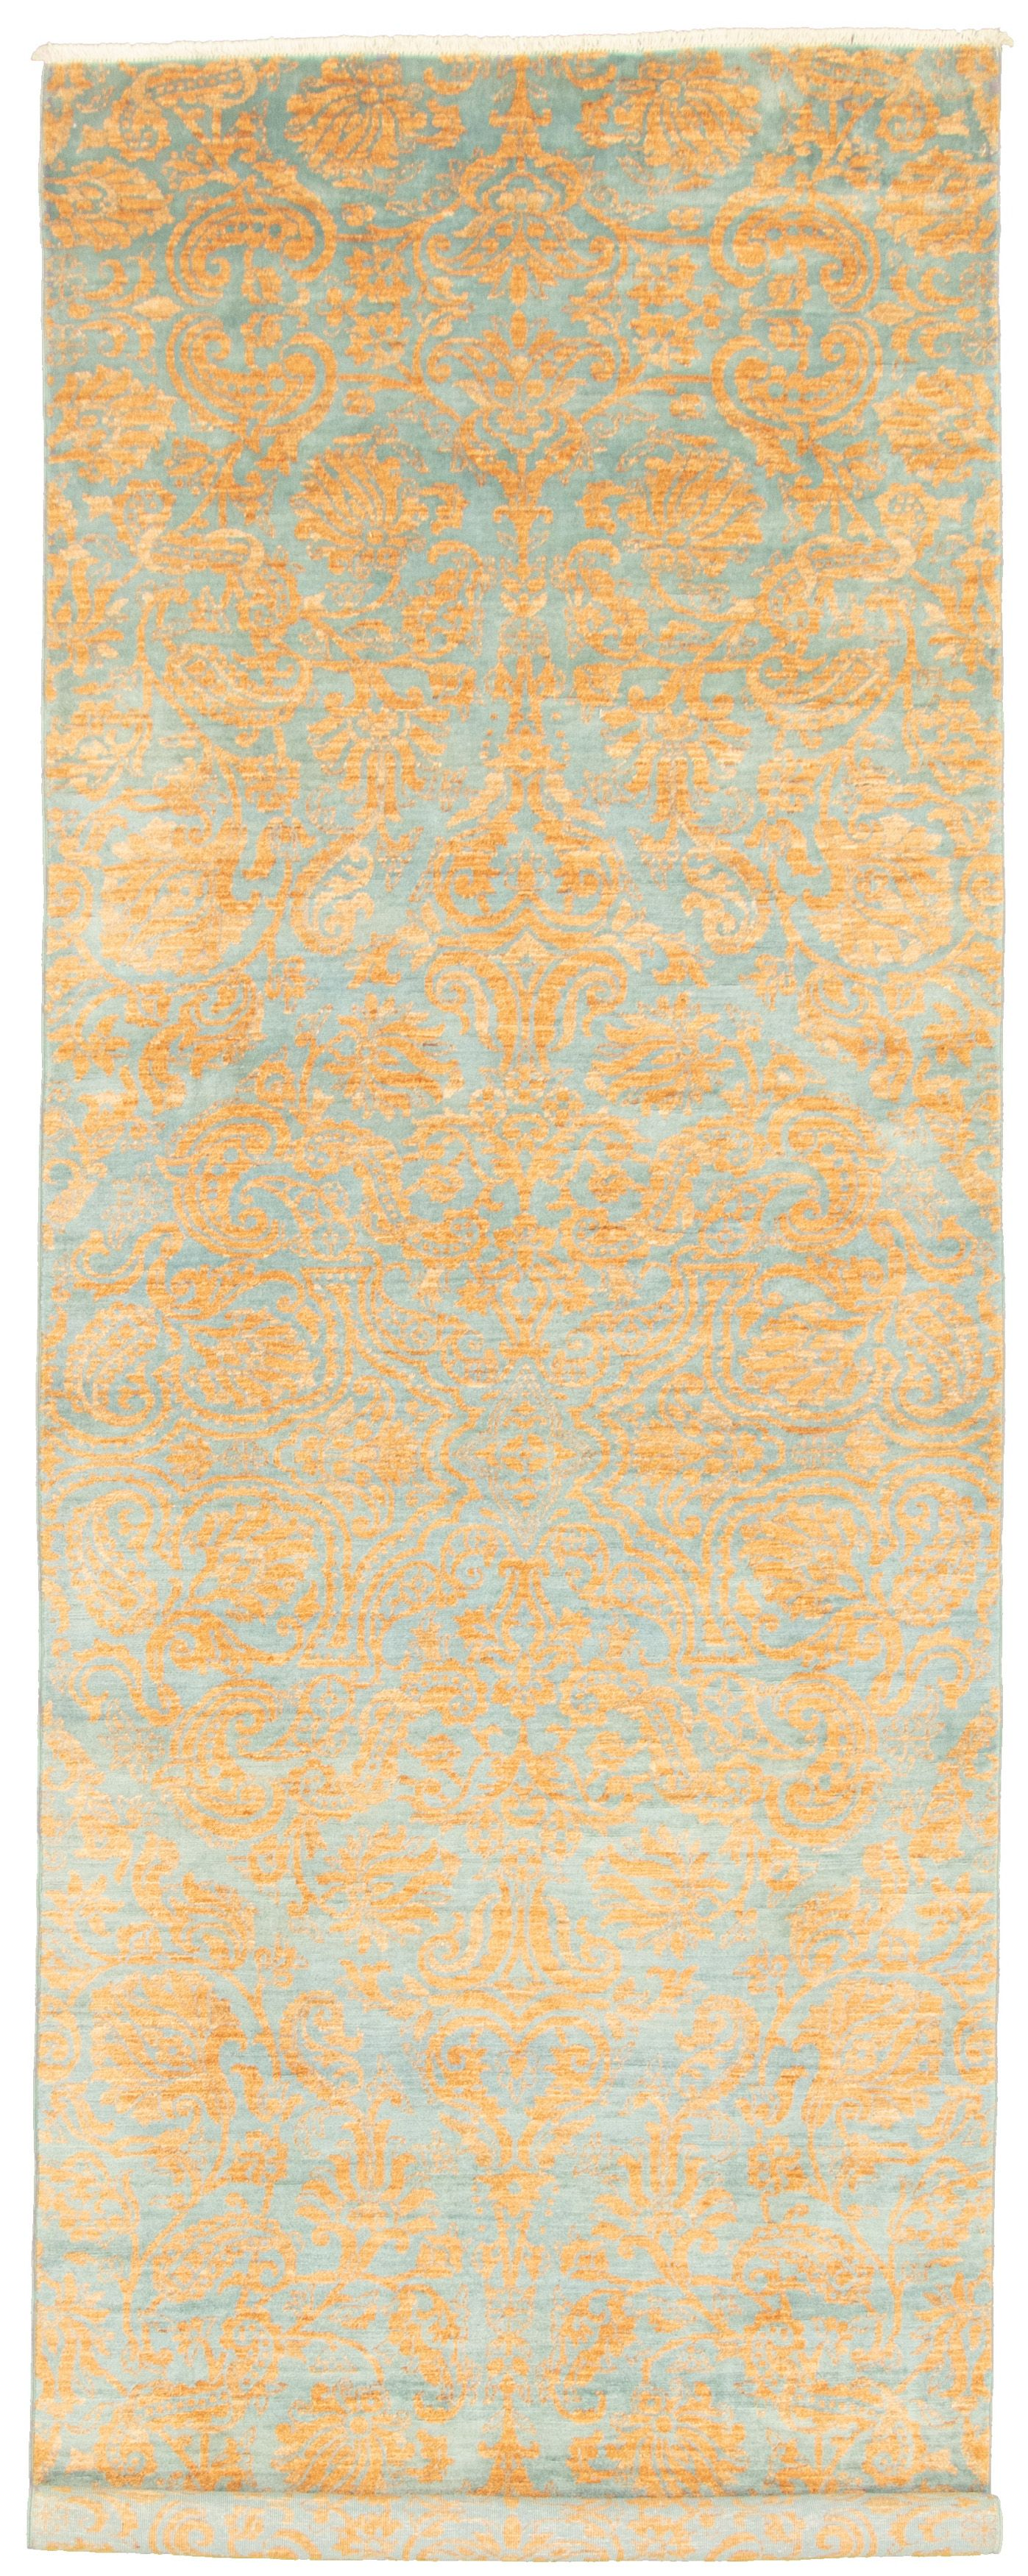 """Hand-knotted Signature Collection Light Blue , Light Brown Wool Rug 4'2"""" x 12'4"""" Size: 4'2"""" x 12'4"""""""